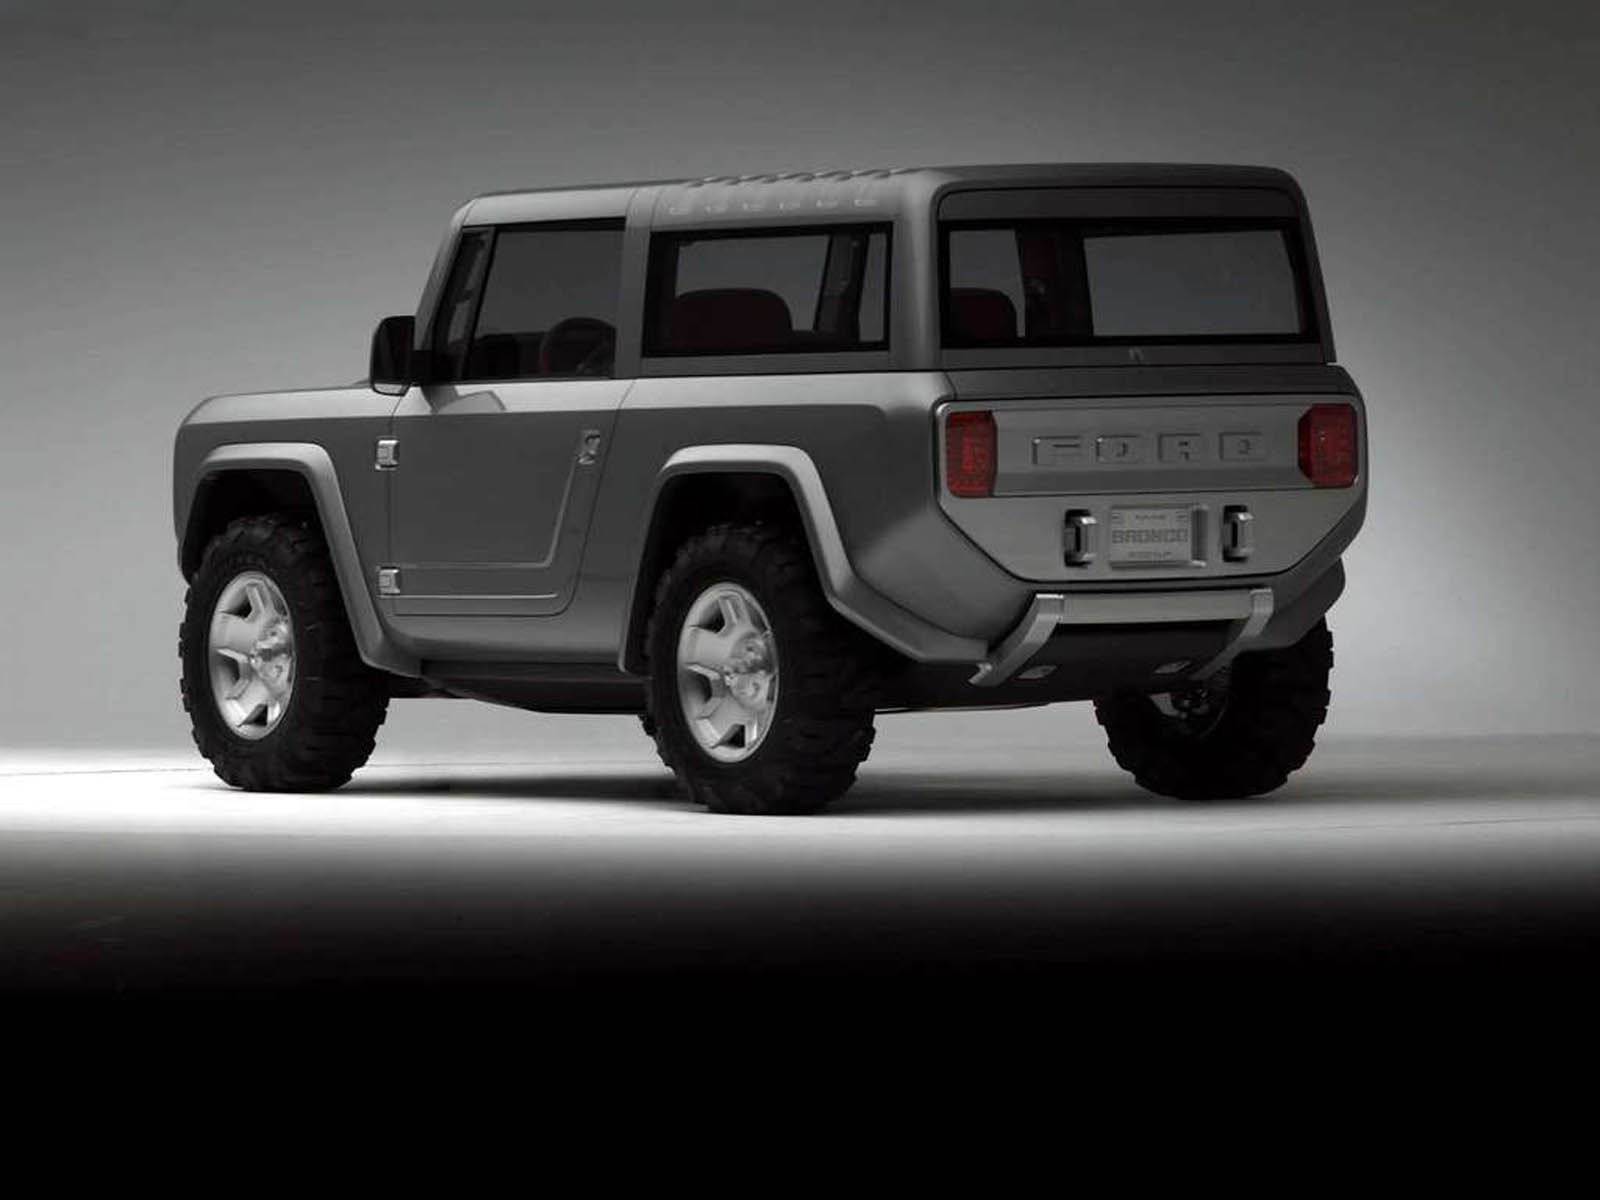 Wallpapers Ford Bronco Concept Car Wallpapers